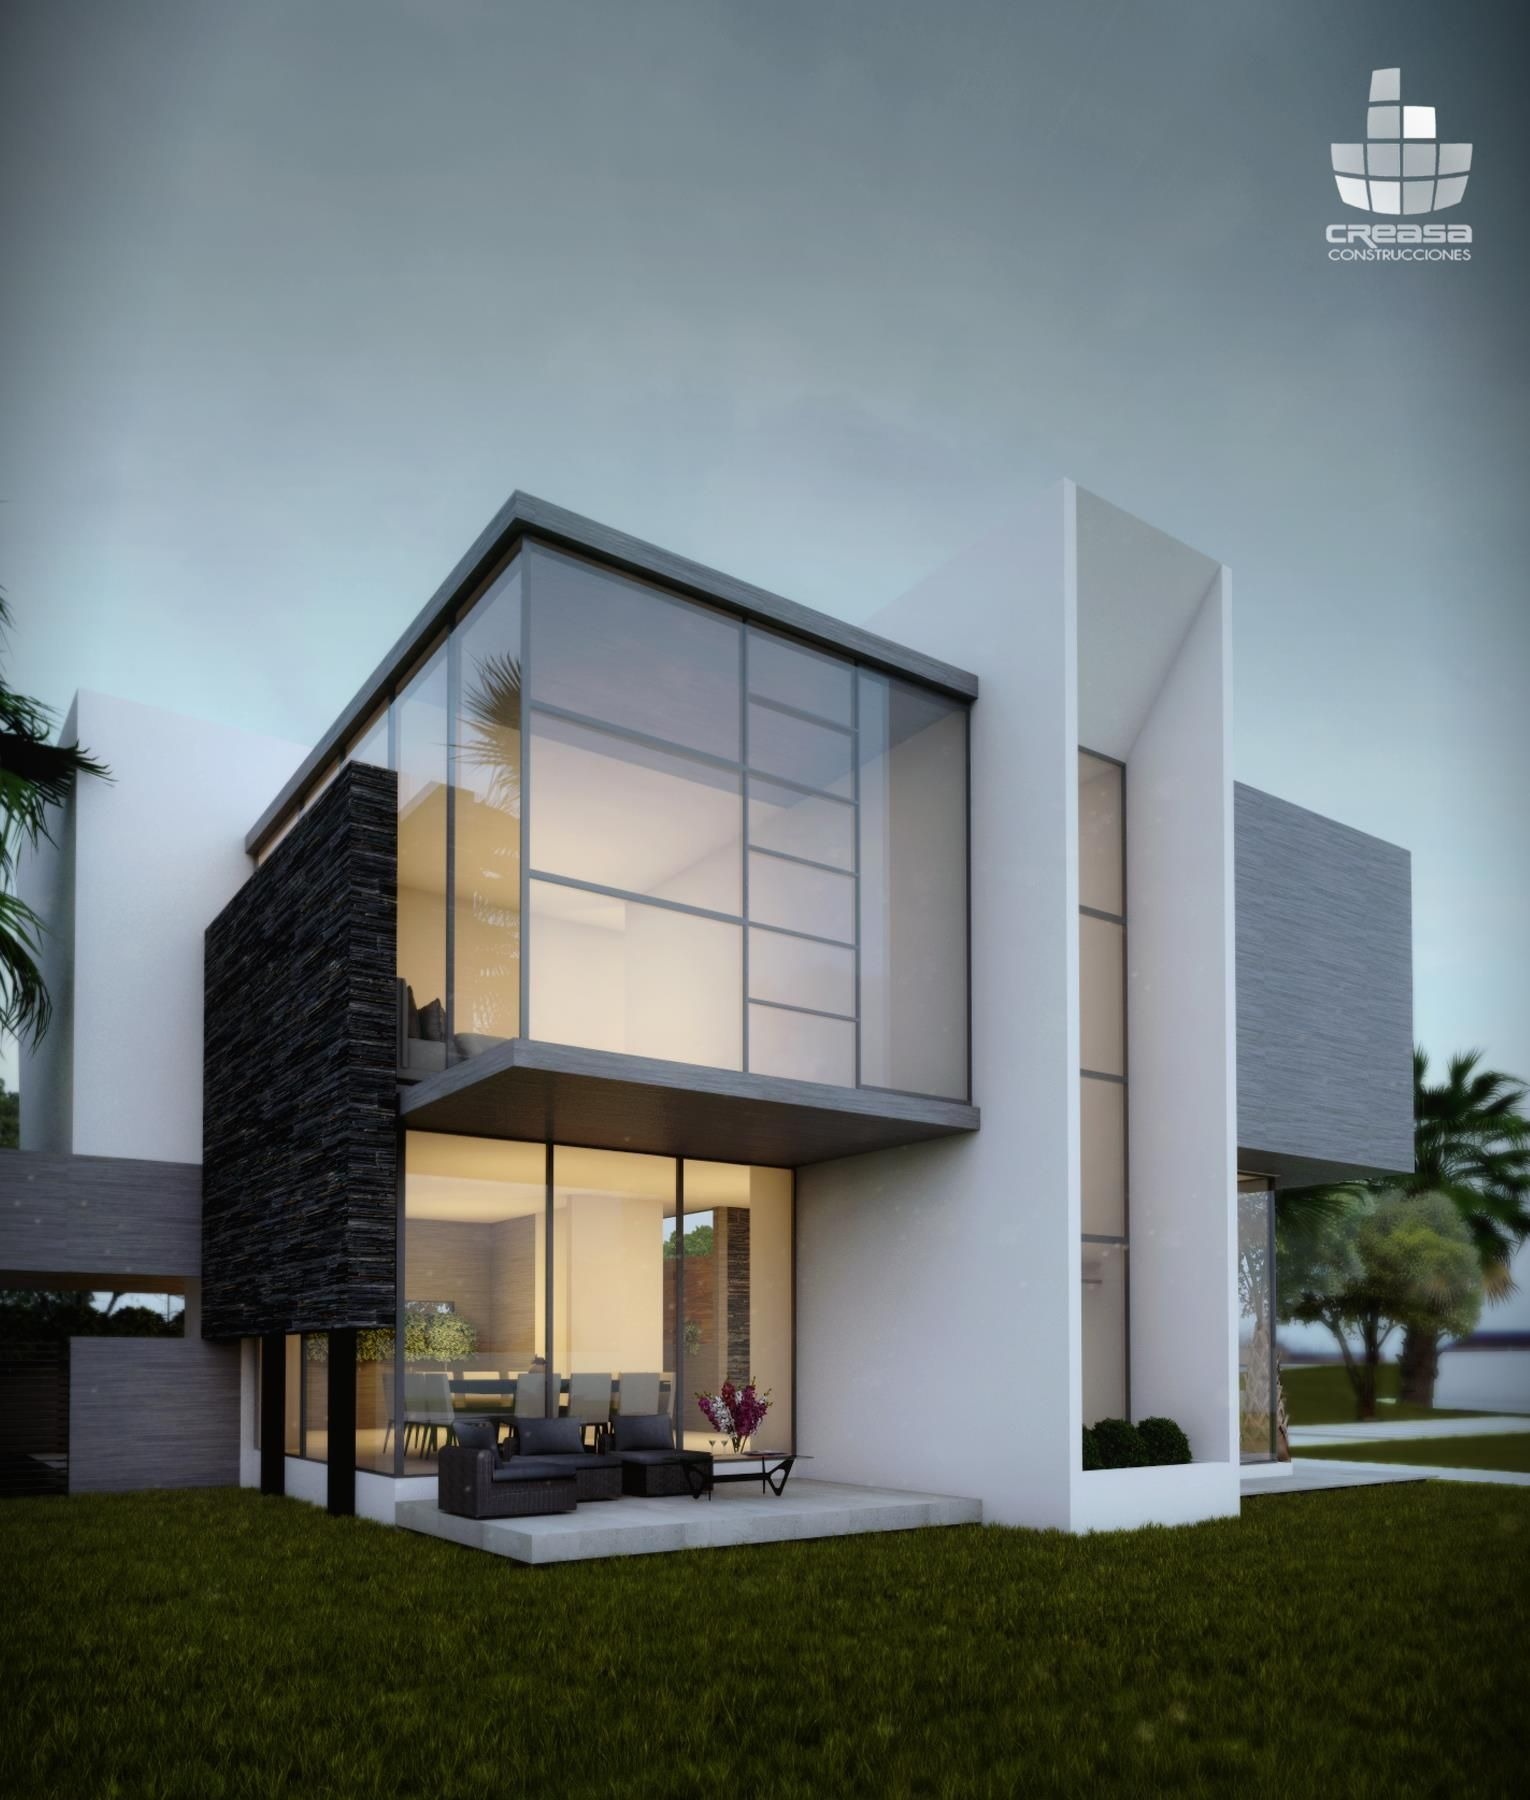 Creasa modern architecture pinterest villas house Contemporary home construction